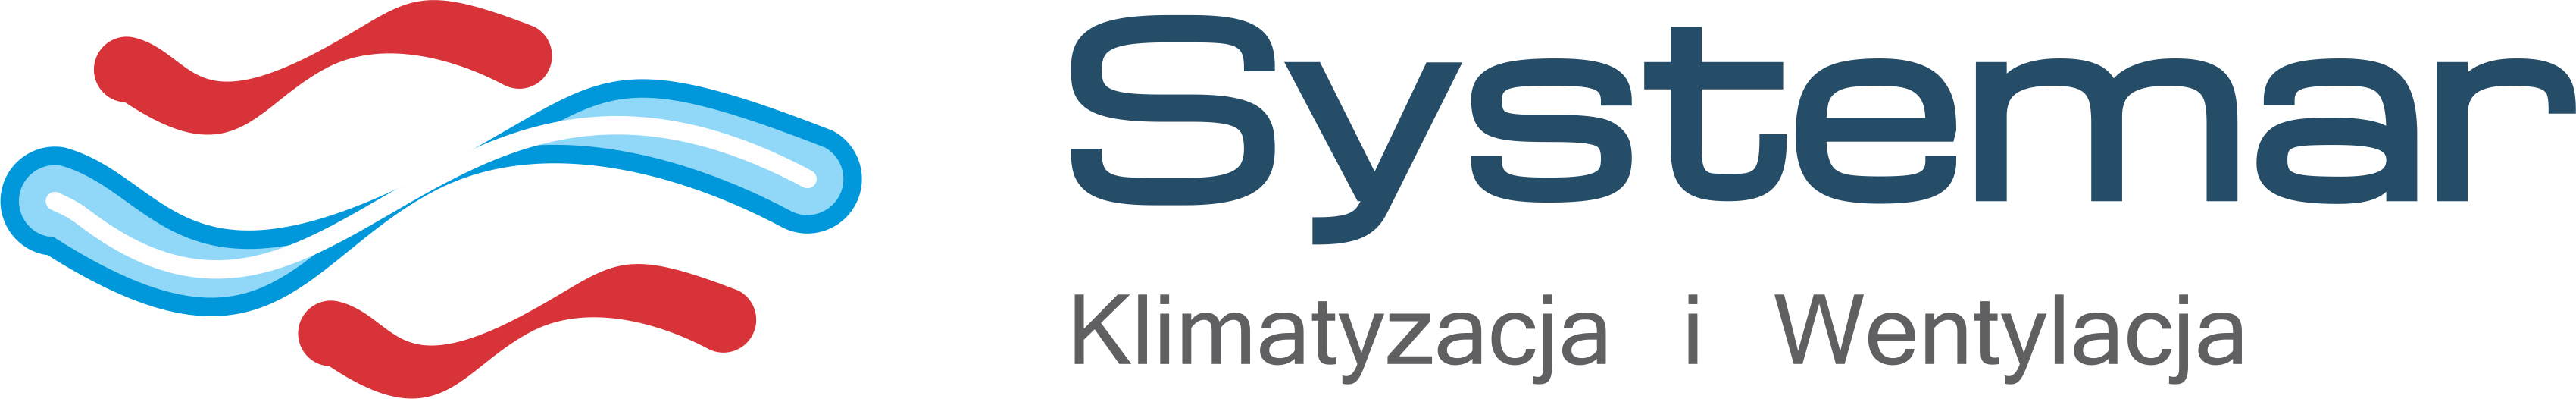 Systemar.pl